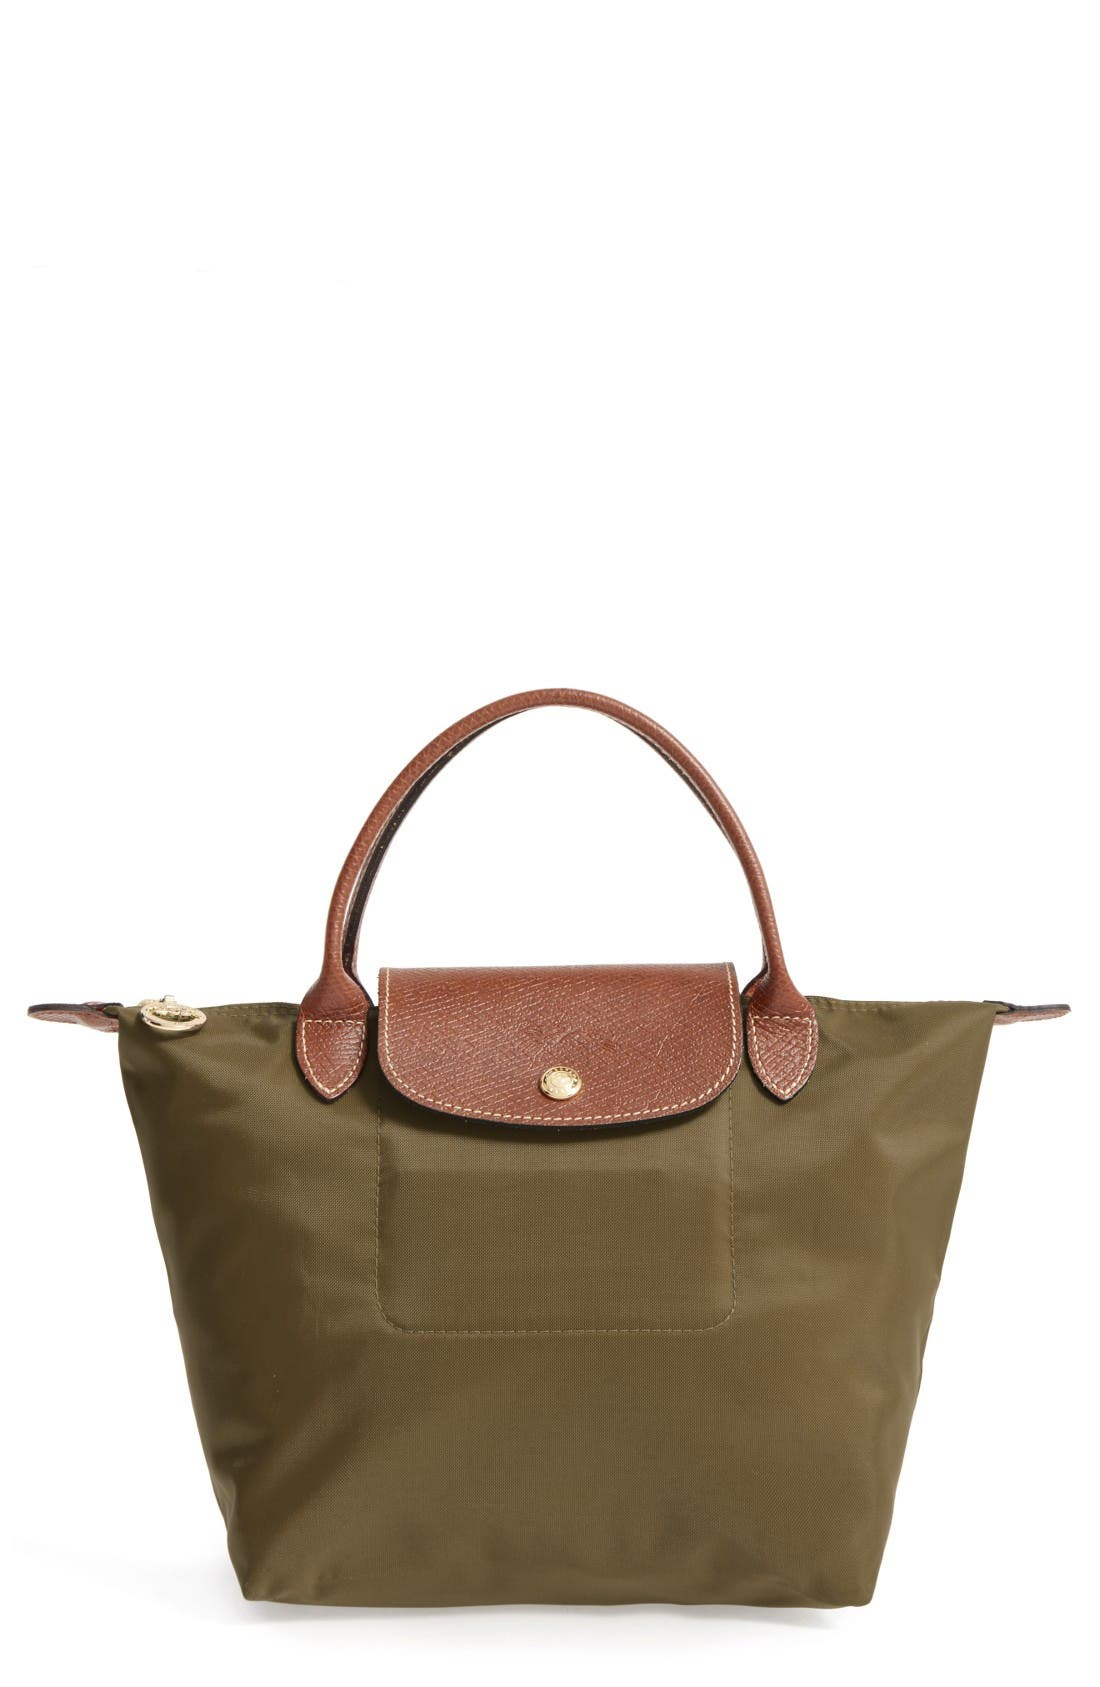 'Small Le Pliage' Top Handle Tote,                         Main,                         color, New Khaki